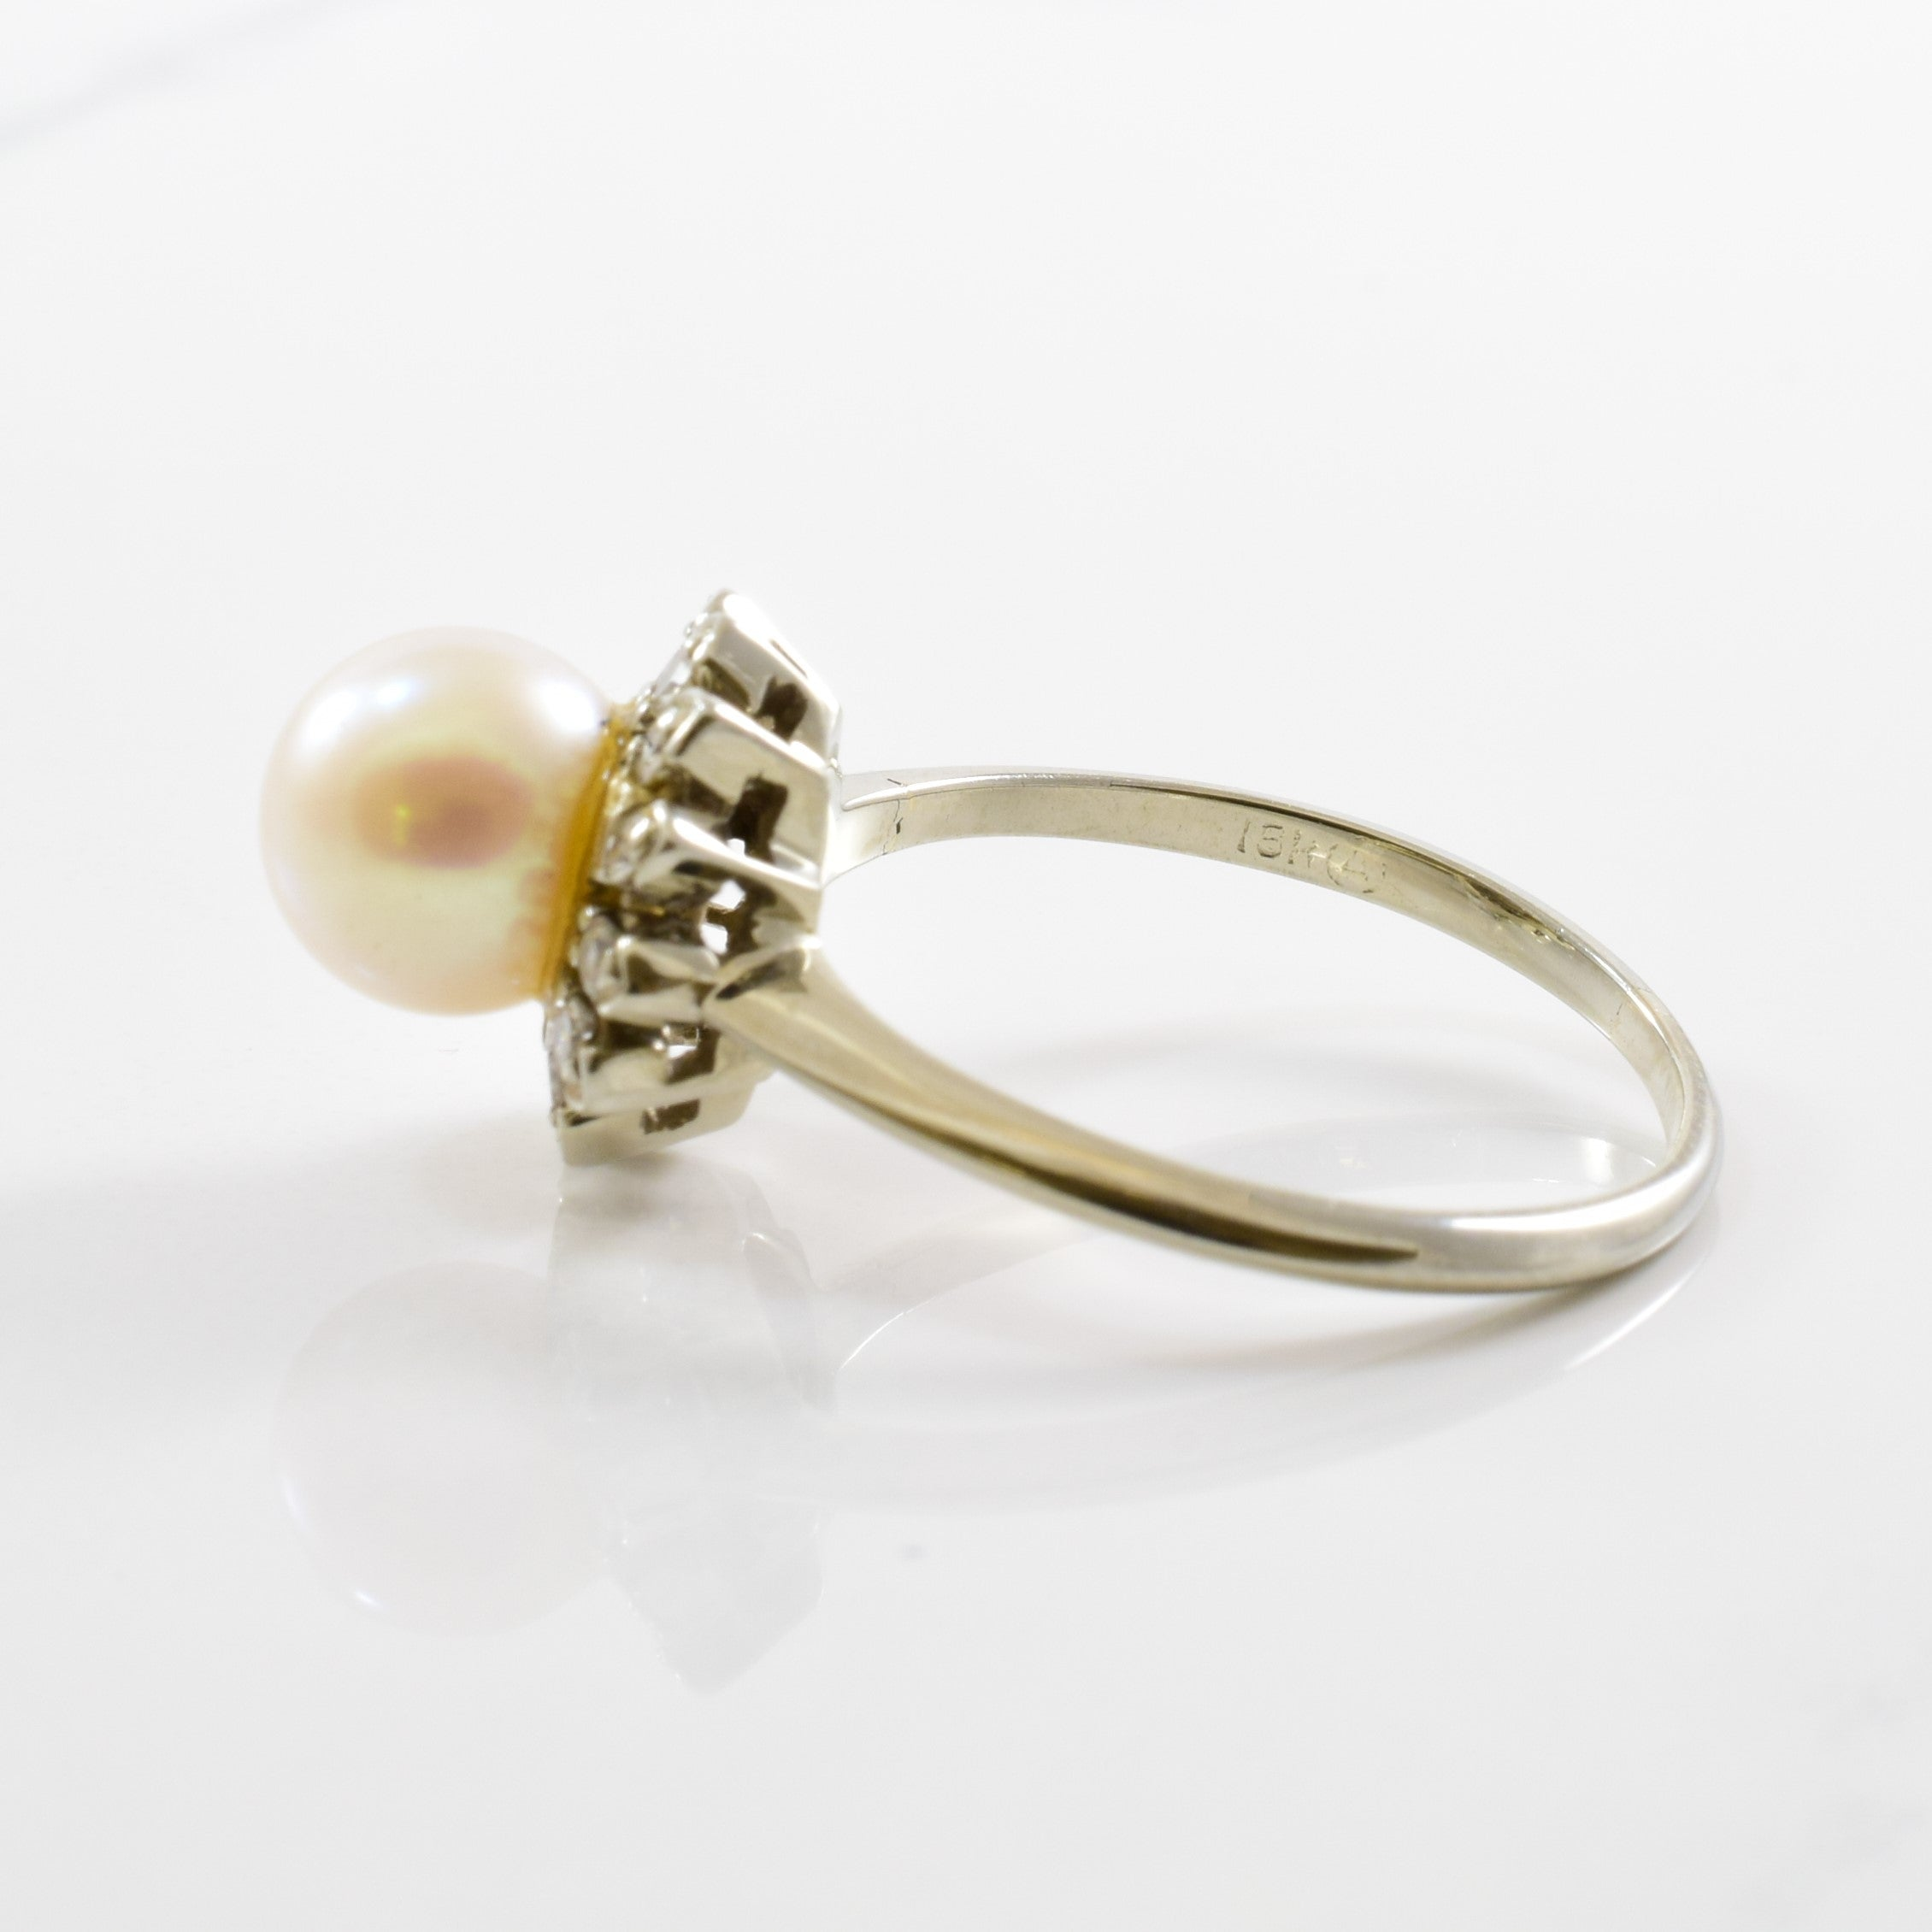 Retro Era Pearl & Diamond Halo Ring | 0.18 ctw | SZ 7.5 |